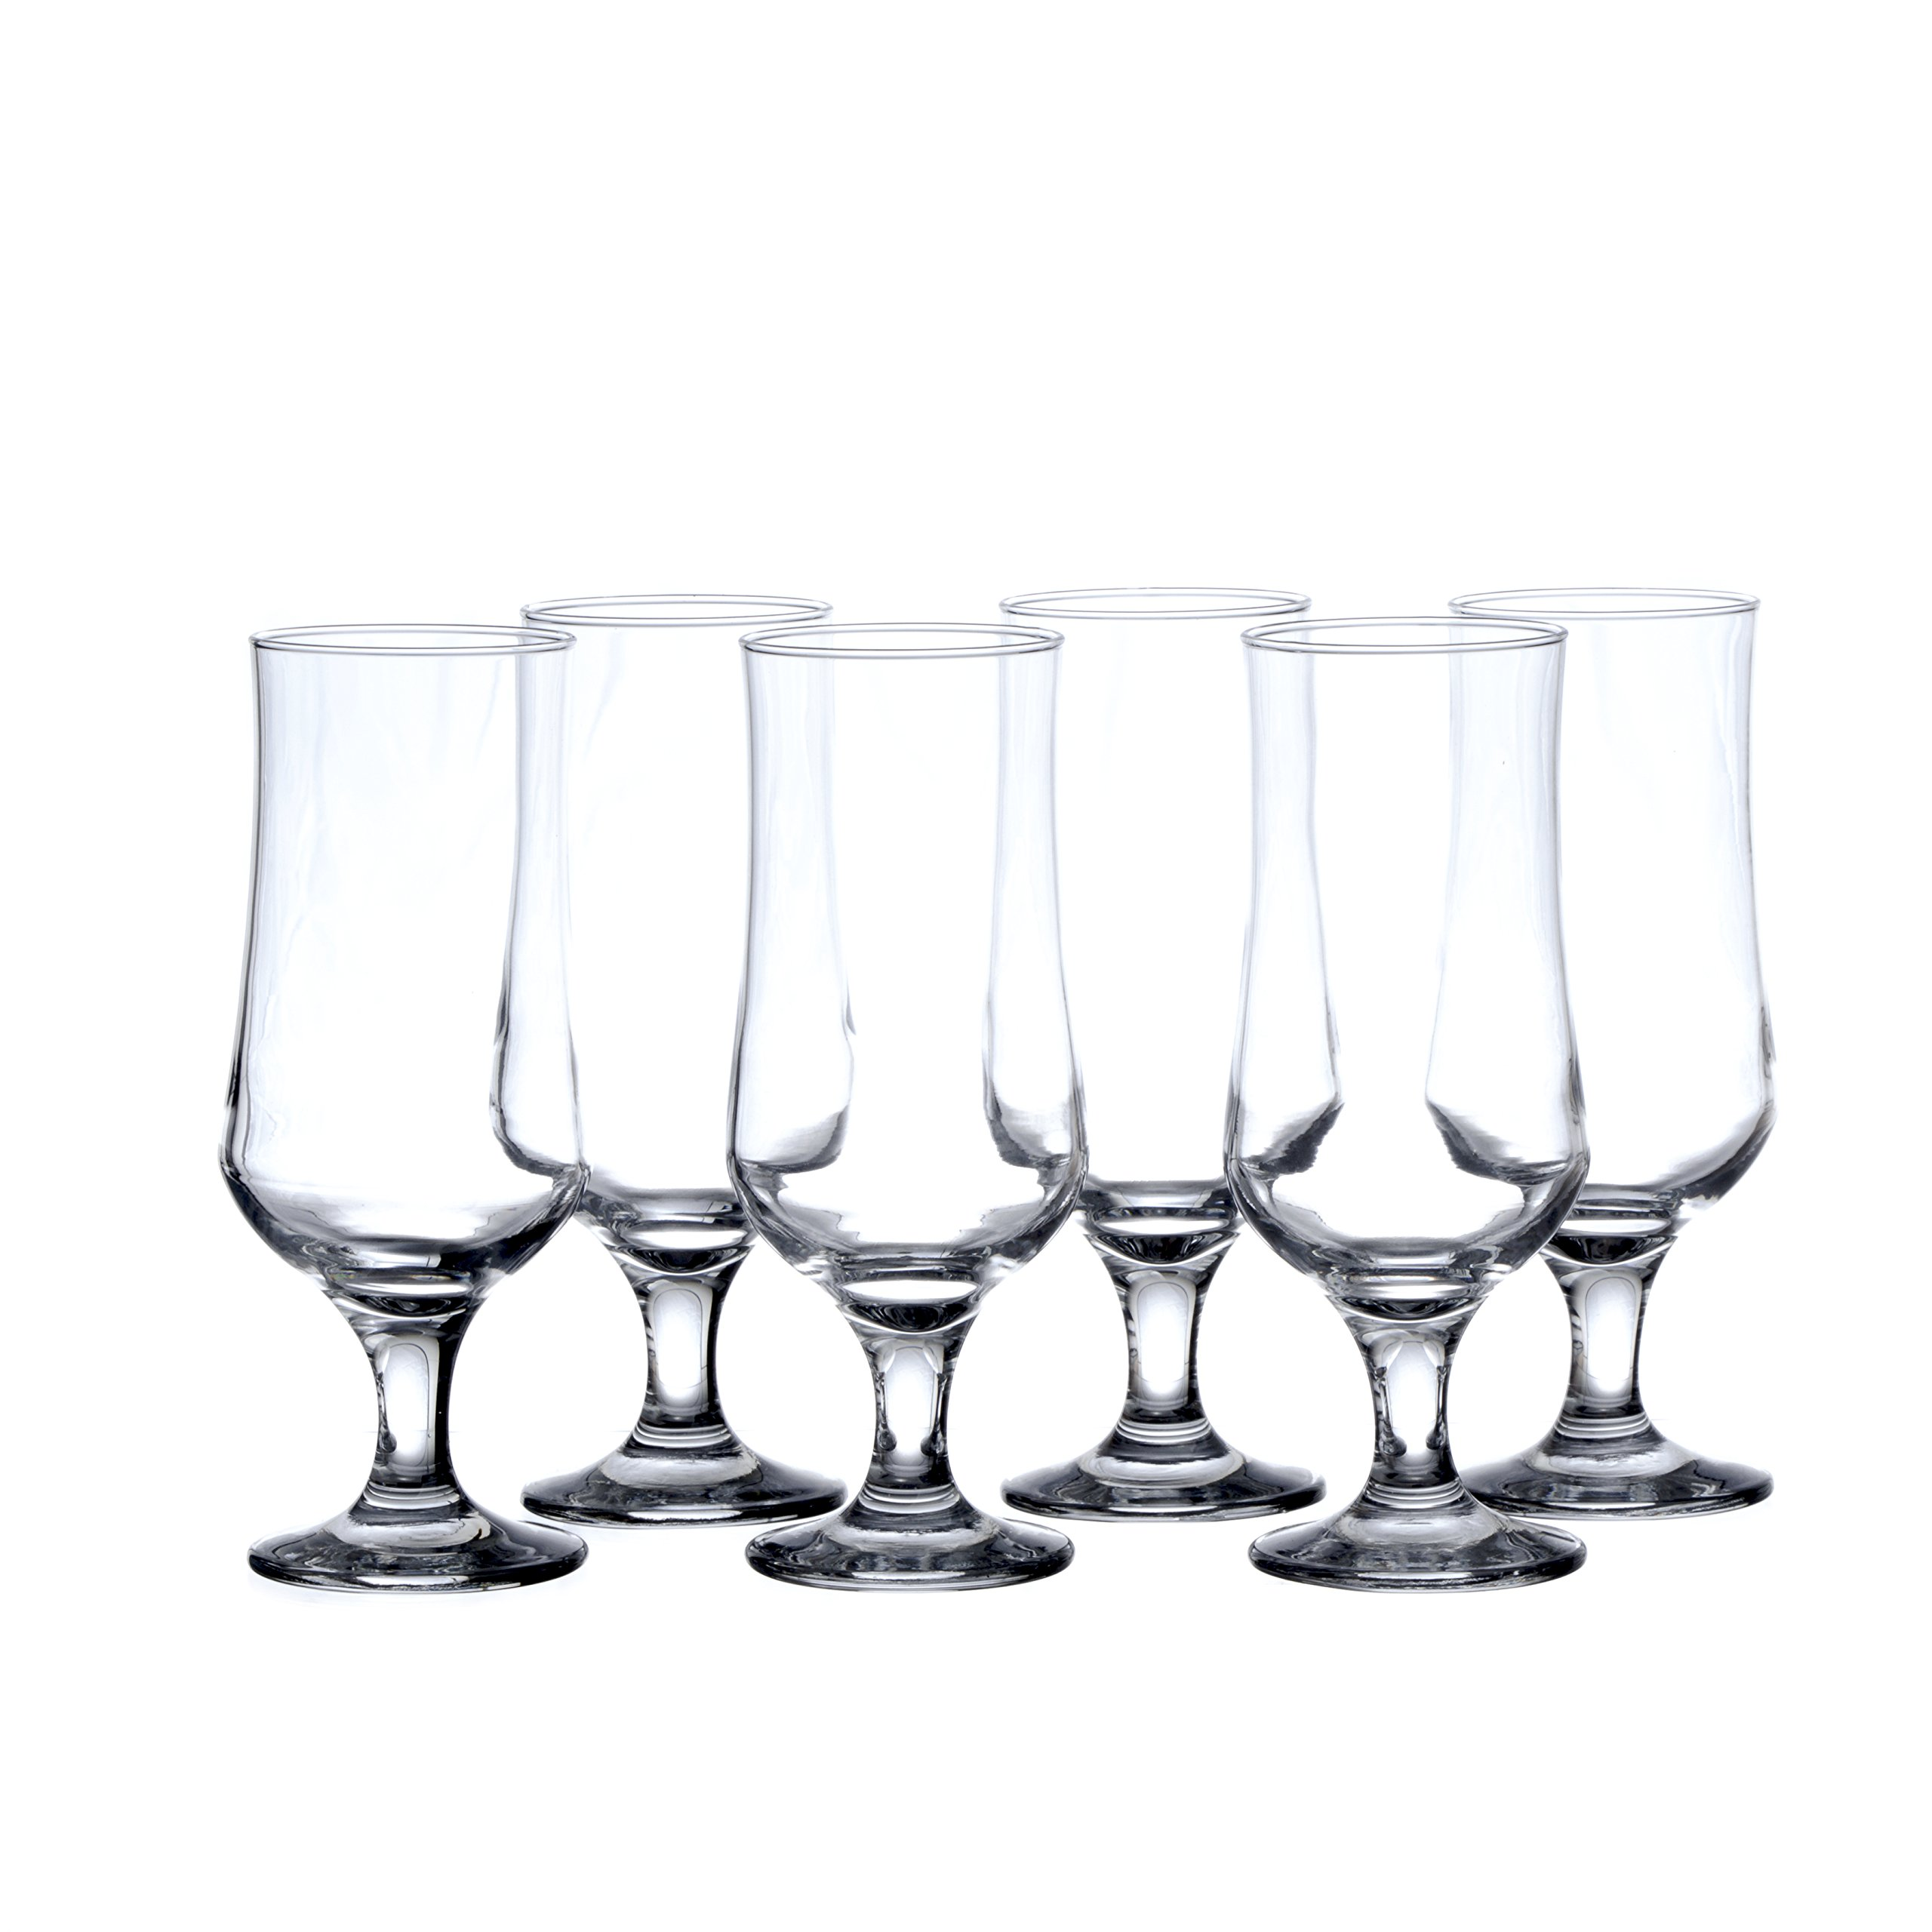 PASABACHE Hurricane Cocktail Glasses, 13-Ounce (6-piece, 12-piece set) (12)